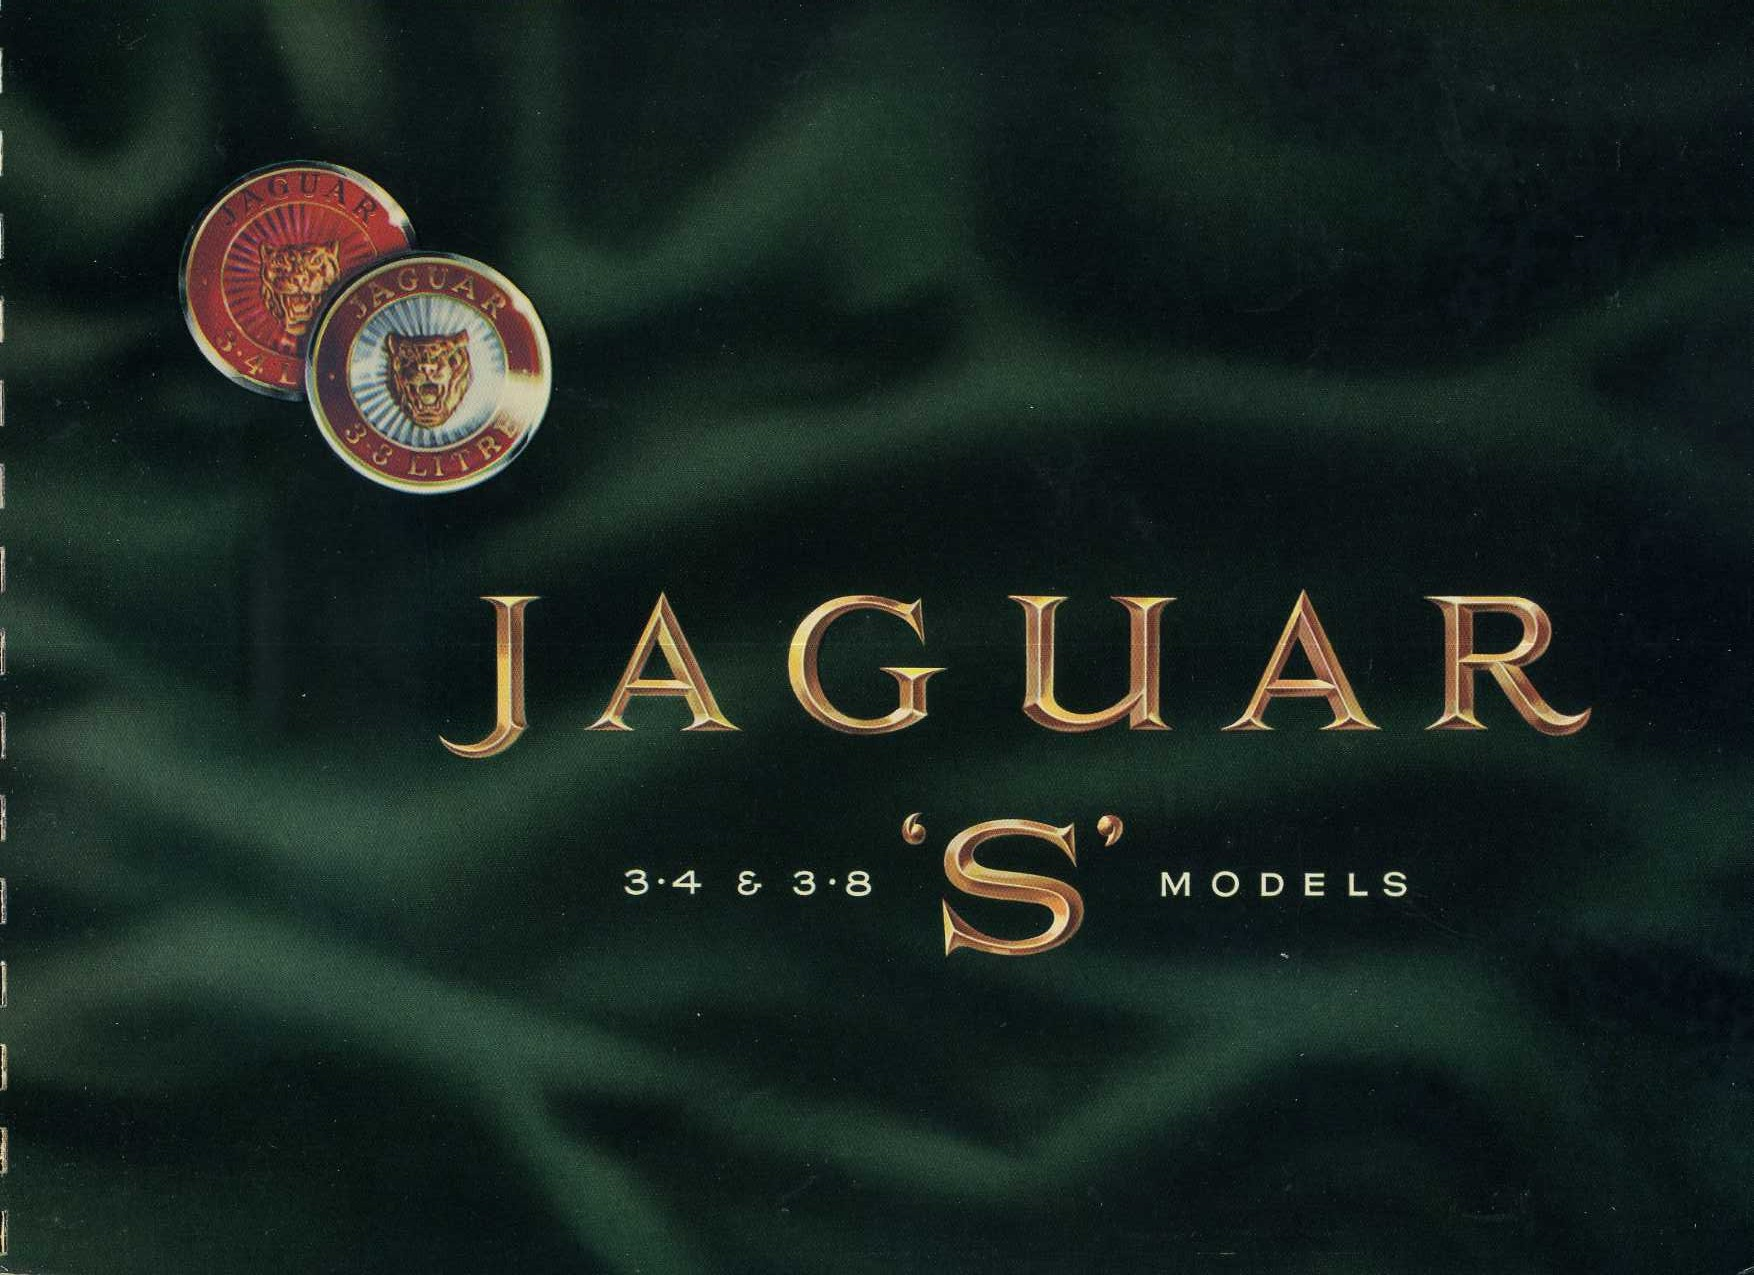 1965 jaguar 3 4 3 8 s models brochure. Black Bedroom Furniture Sets. Home Design Ideas